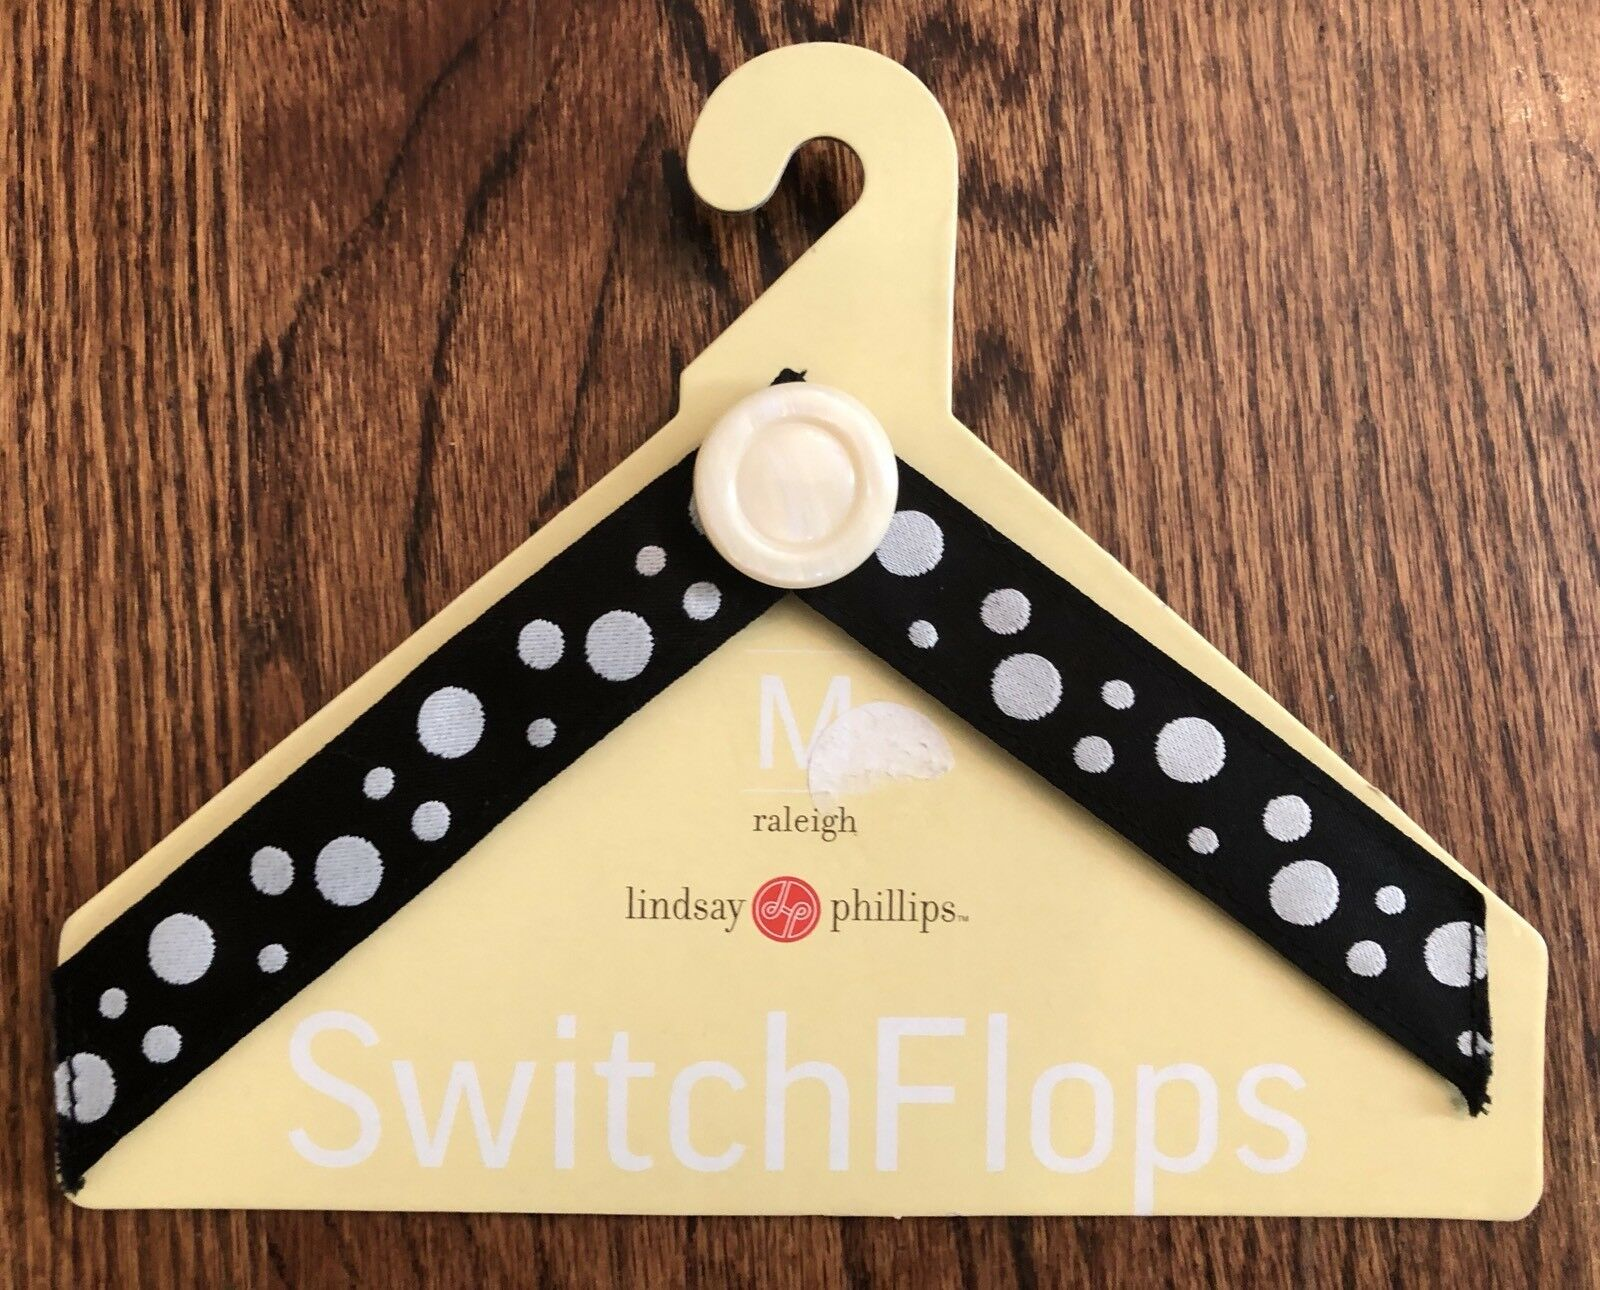 Lindsay Phillips Switch Flop Straps M 7-8 Black White Polka Dots Raleigh NEW